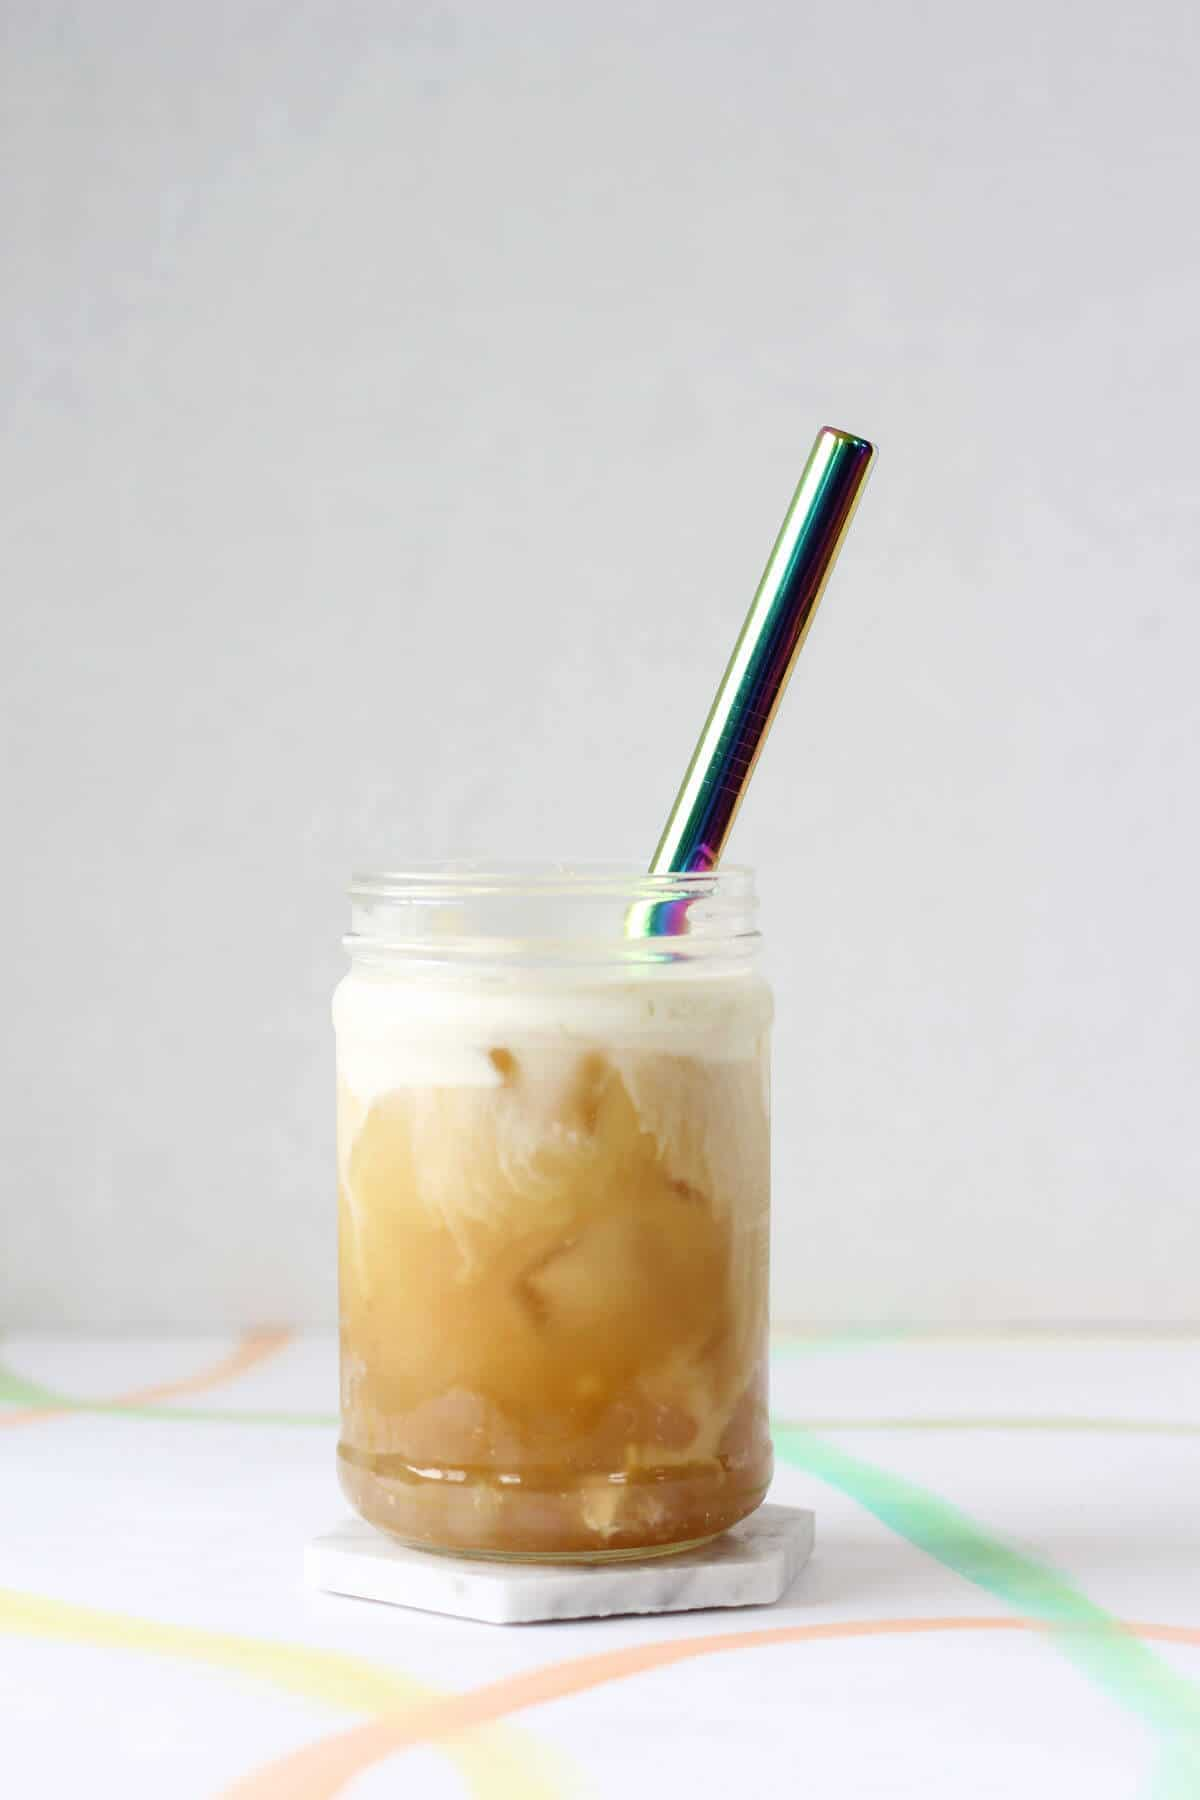 White coaster holding clear glass filled with opaque boba, orange colored iced tea, white foam and a metal straw.